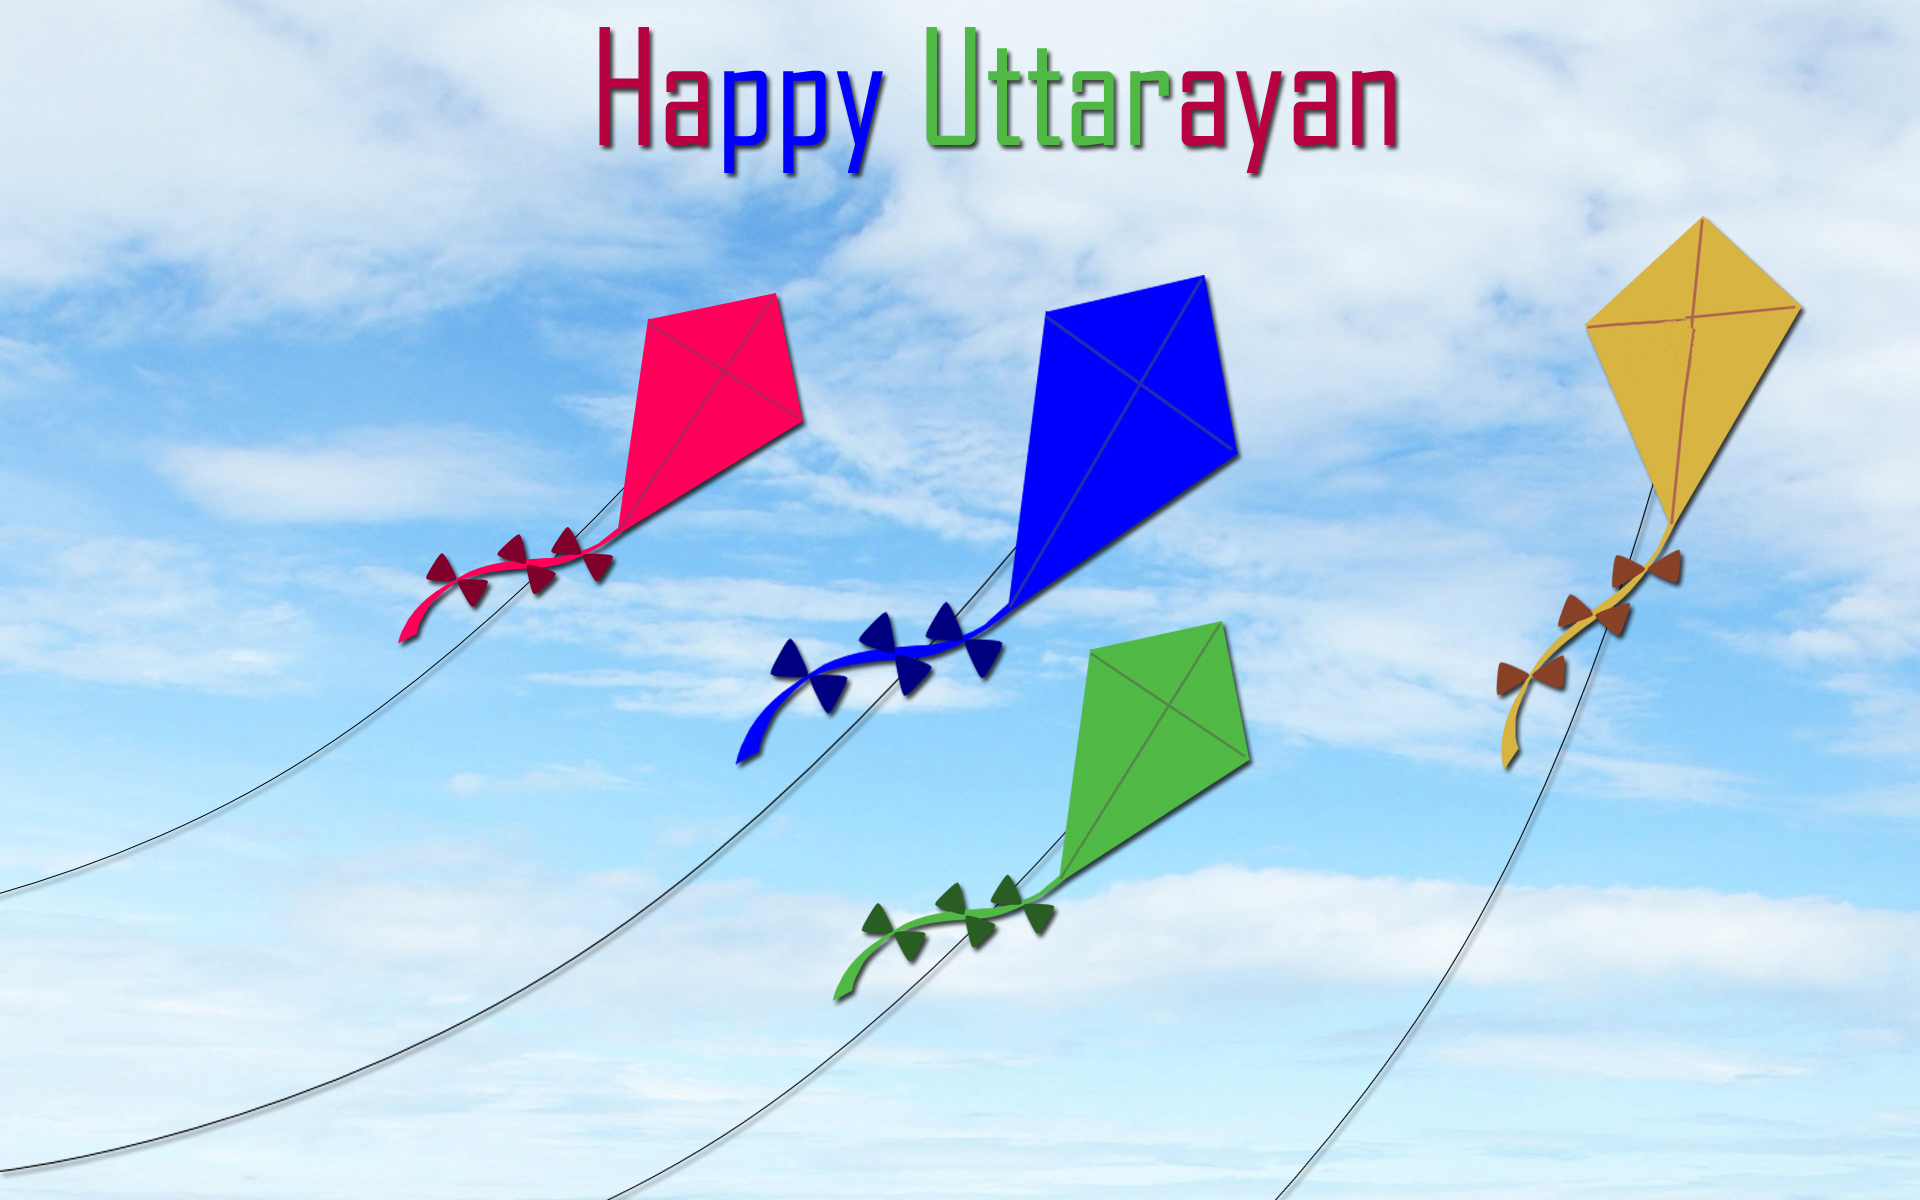 Happy Uttrayan 2018 Image for Whatsapp